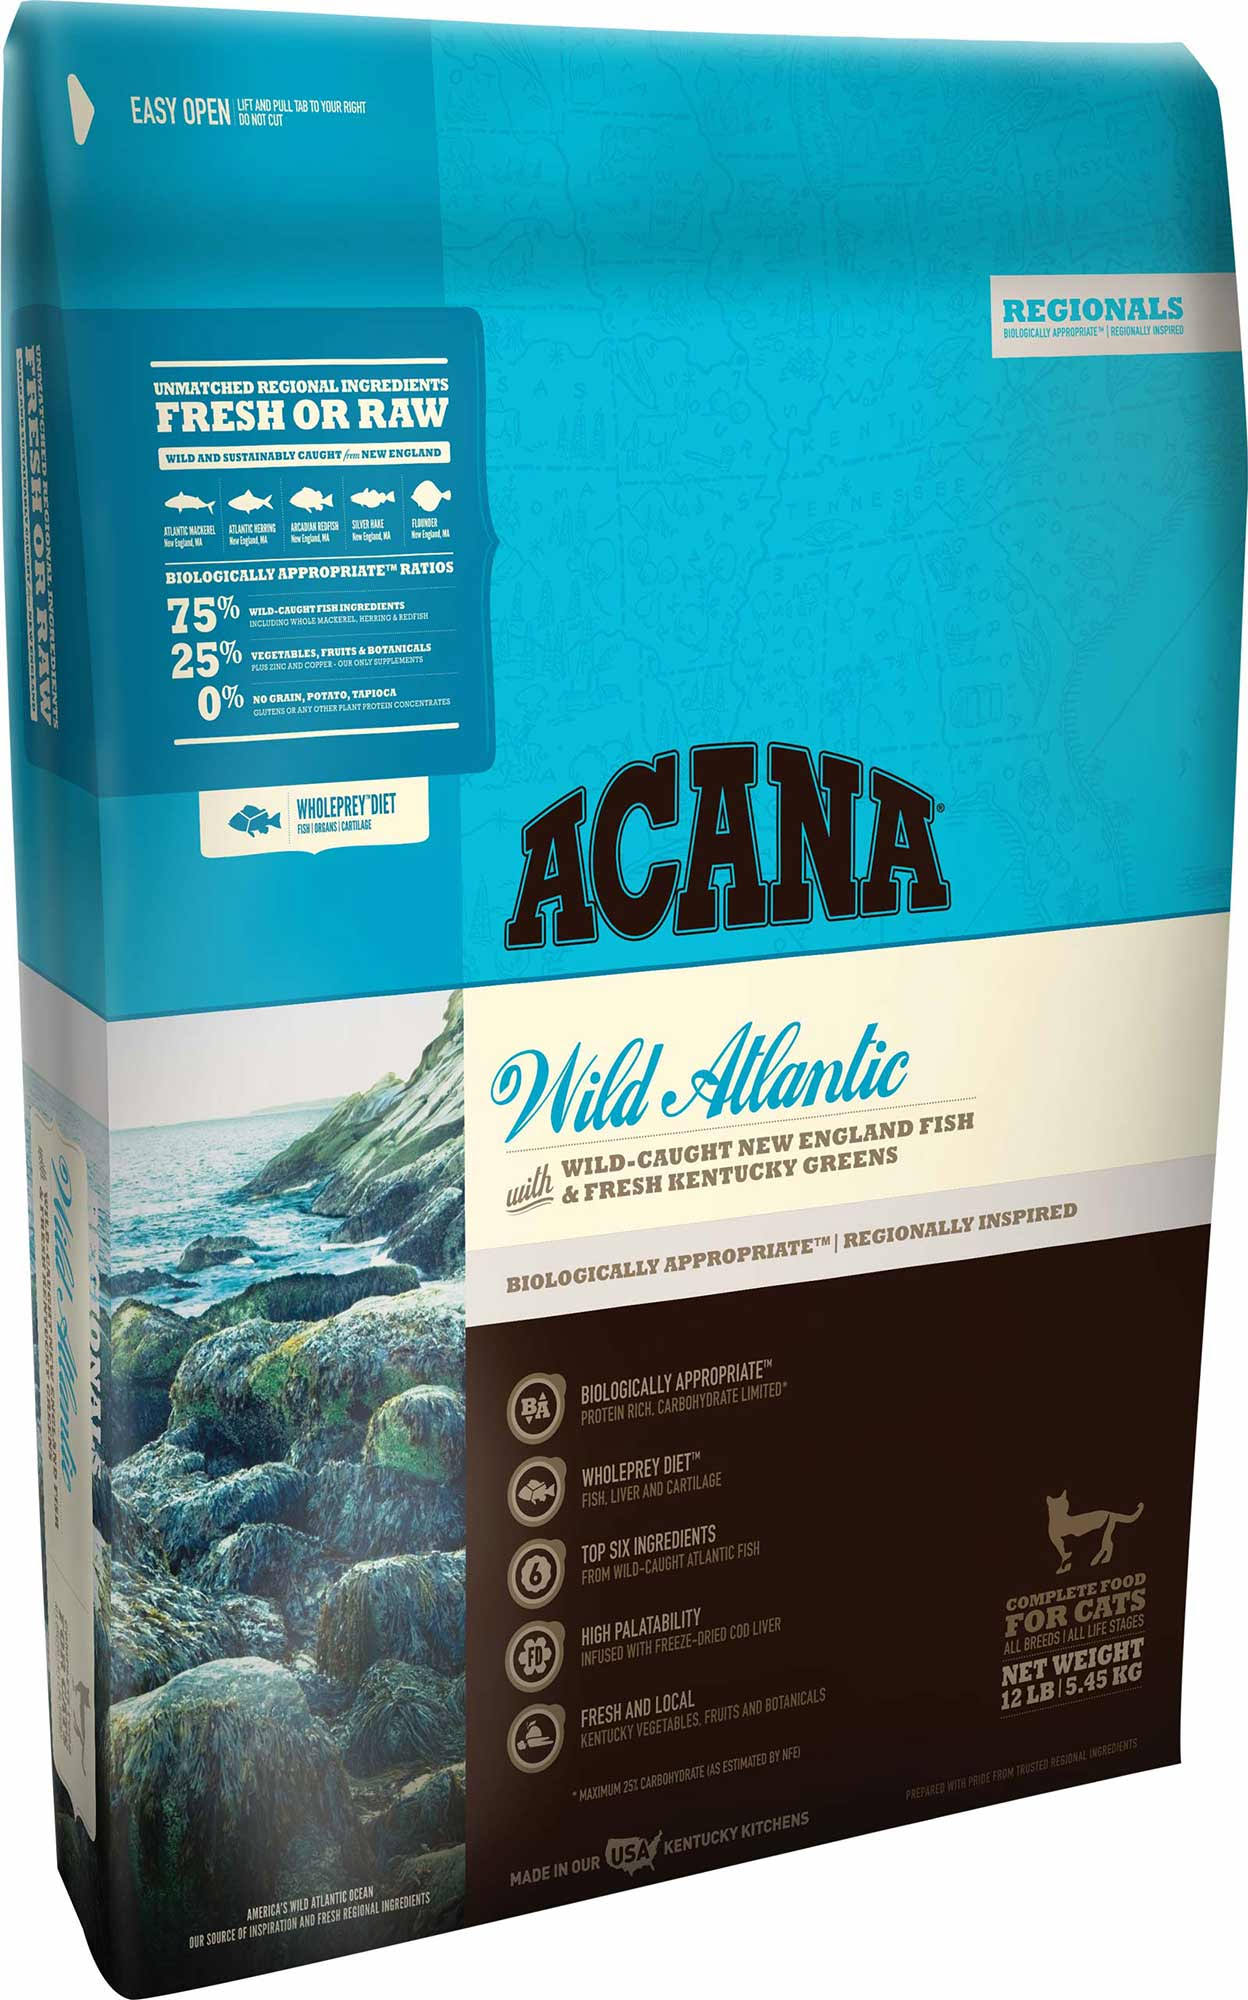 Acana Wild Atlantic Dry Cat Food - 12 oz bag